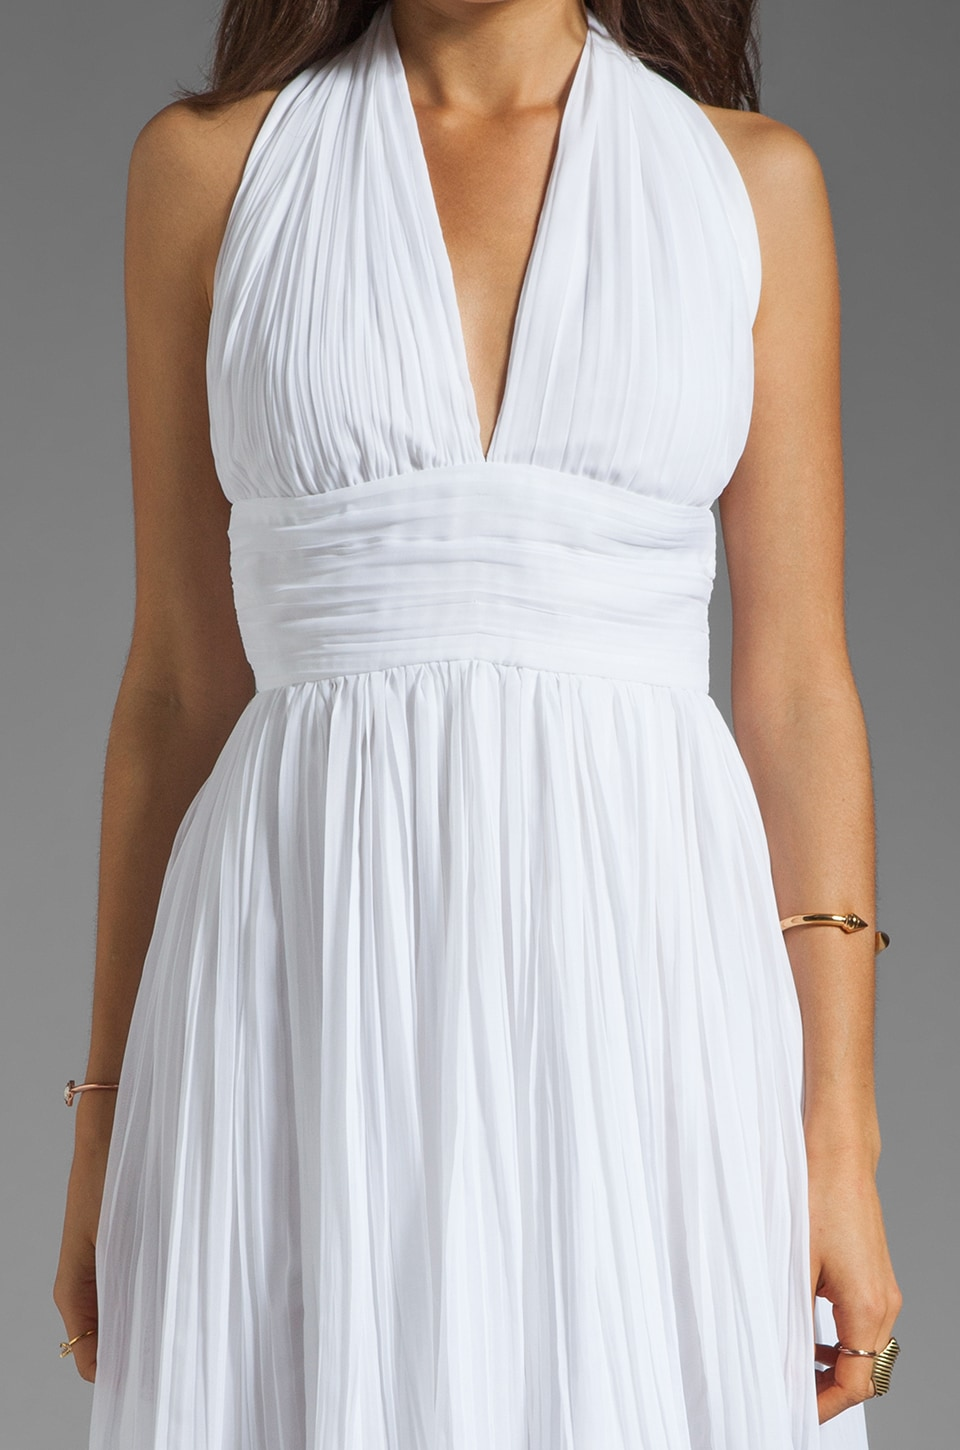 BB Dakota Graciela Pleated Chiffon Dress in Optic White